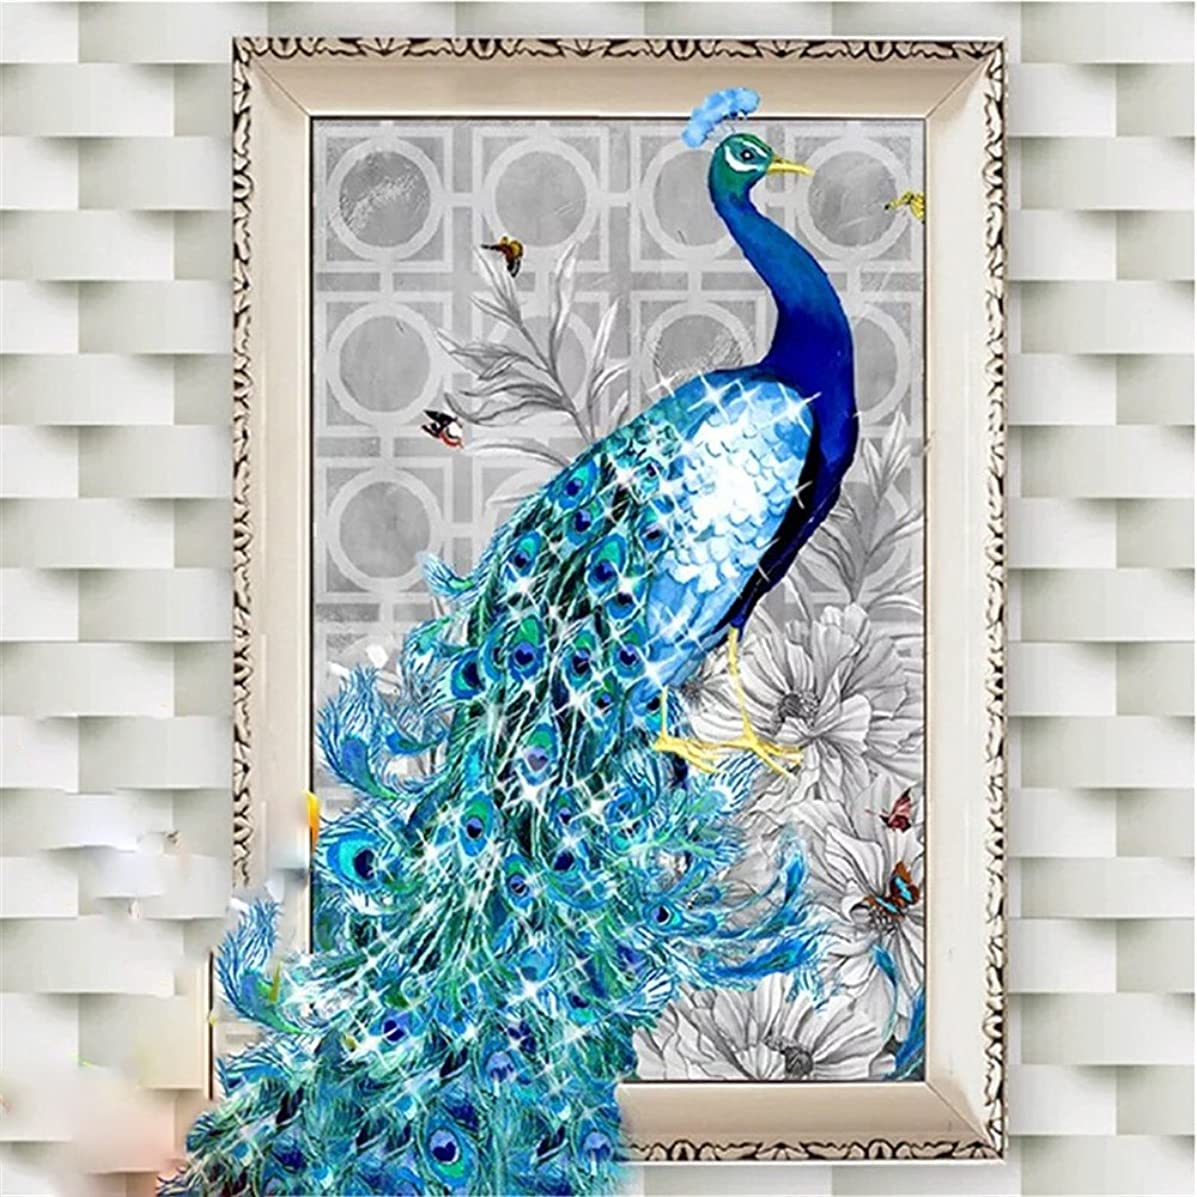 5D DIY Crystals Diamond Rhinestone Painting Pasted Paint By Number Kits Peacock,40x58 CM Size (Left)